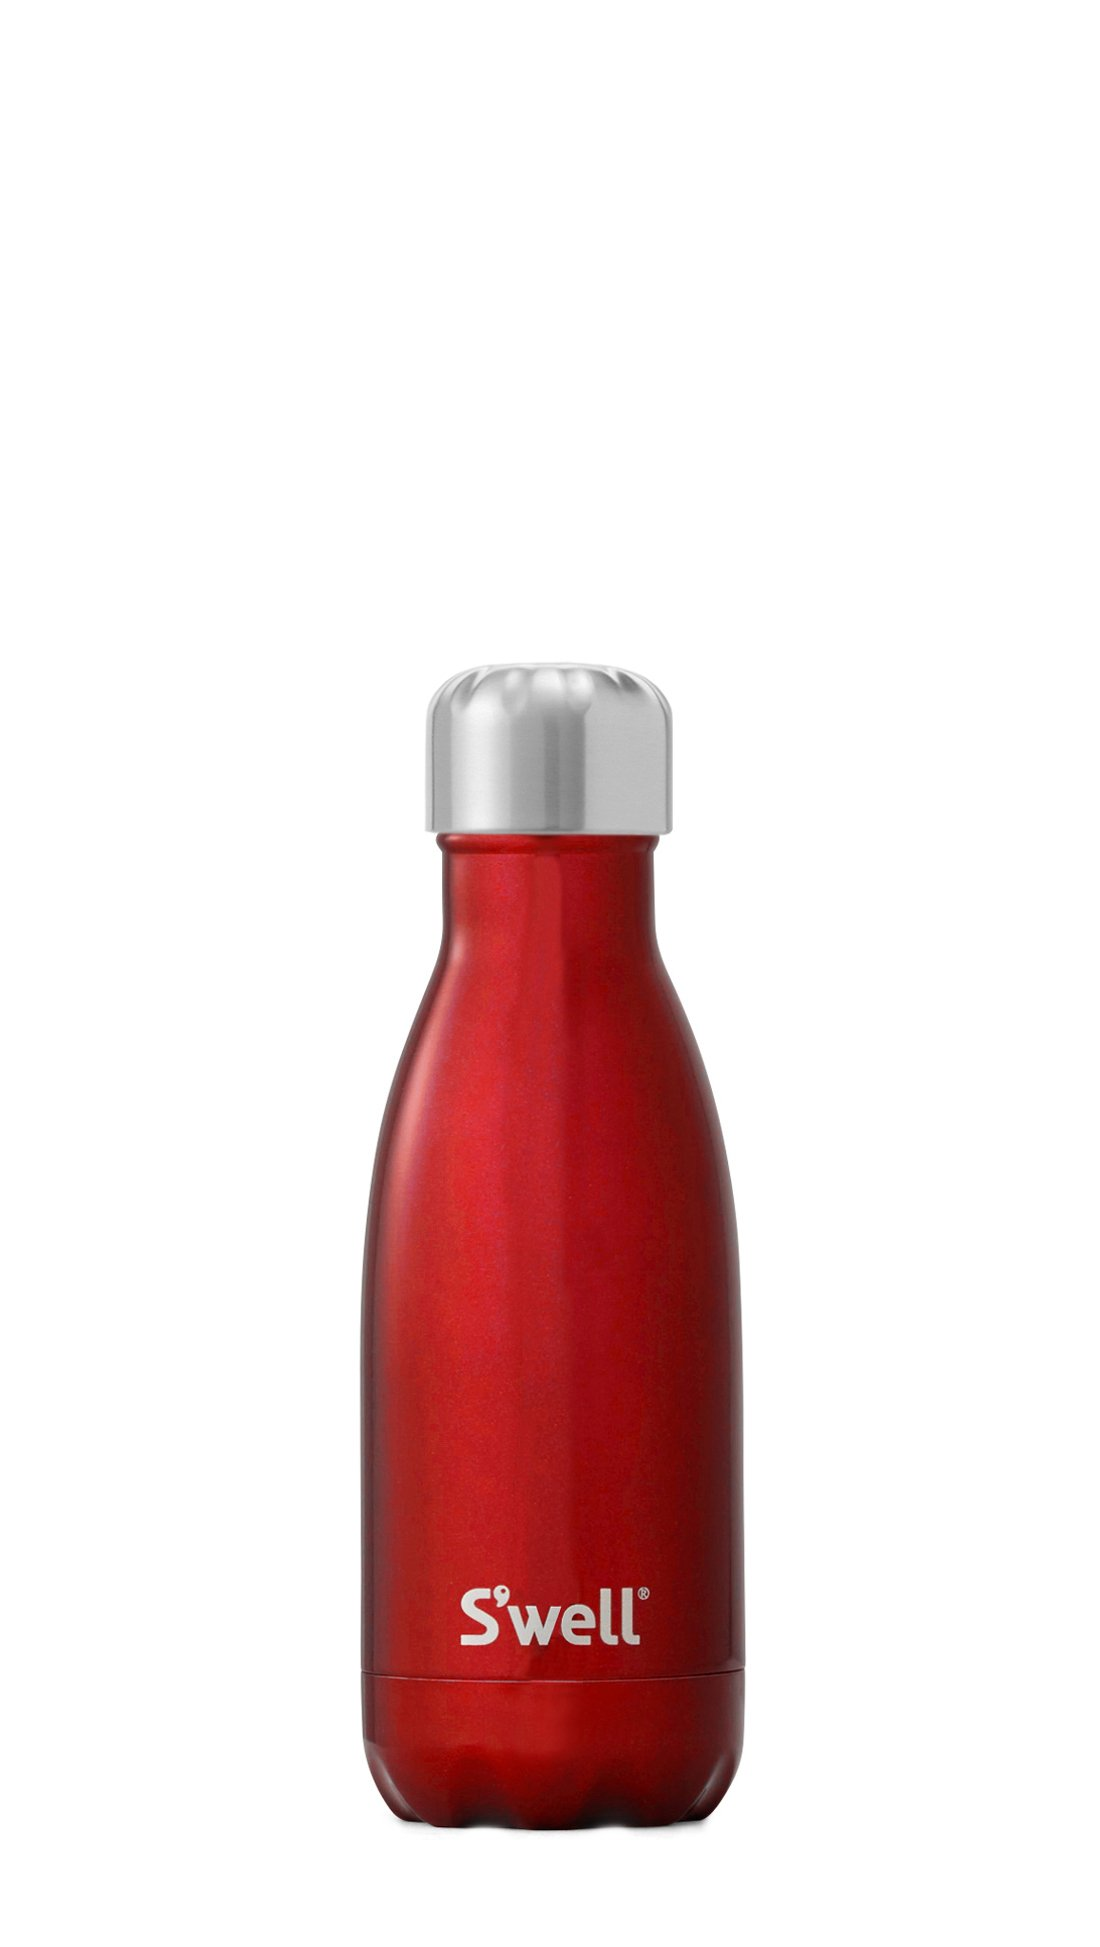 S'well Vacuum Insulated Stainless Steel Water Bottle, 9 oz, Rowboat Red by S'well